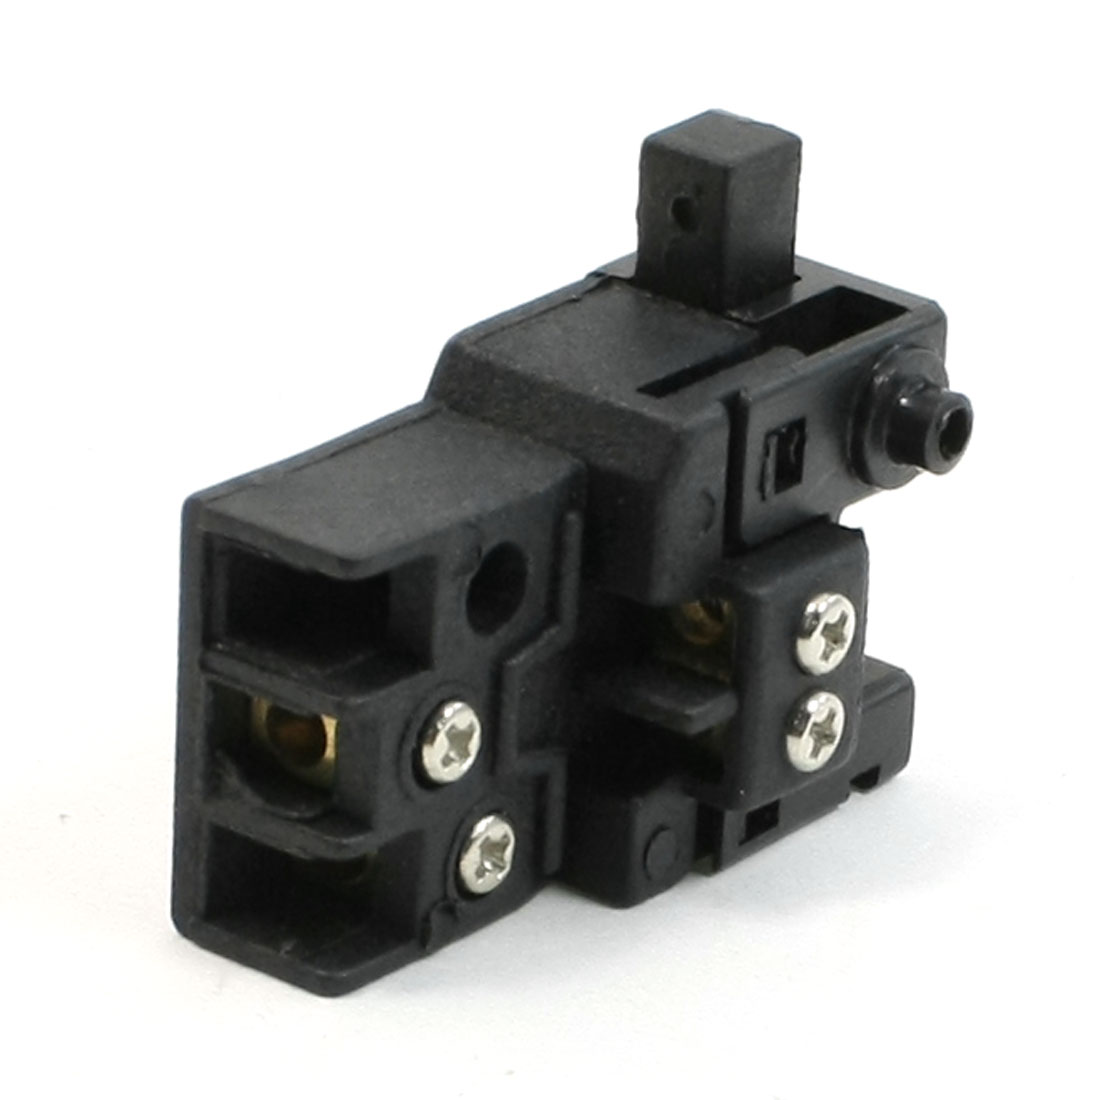 AC 250V Volt 12A 5E4 Black Insulation Shell Electric Tool Switch for Makita 1040